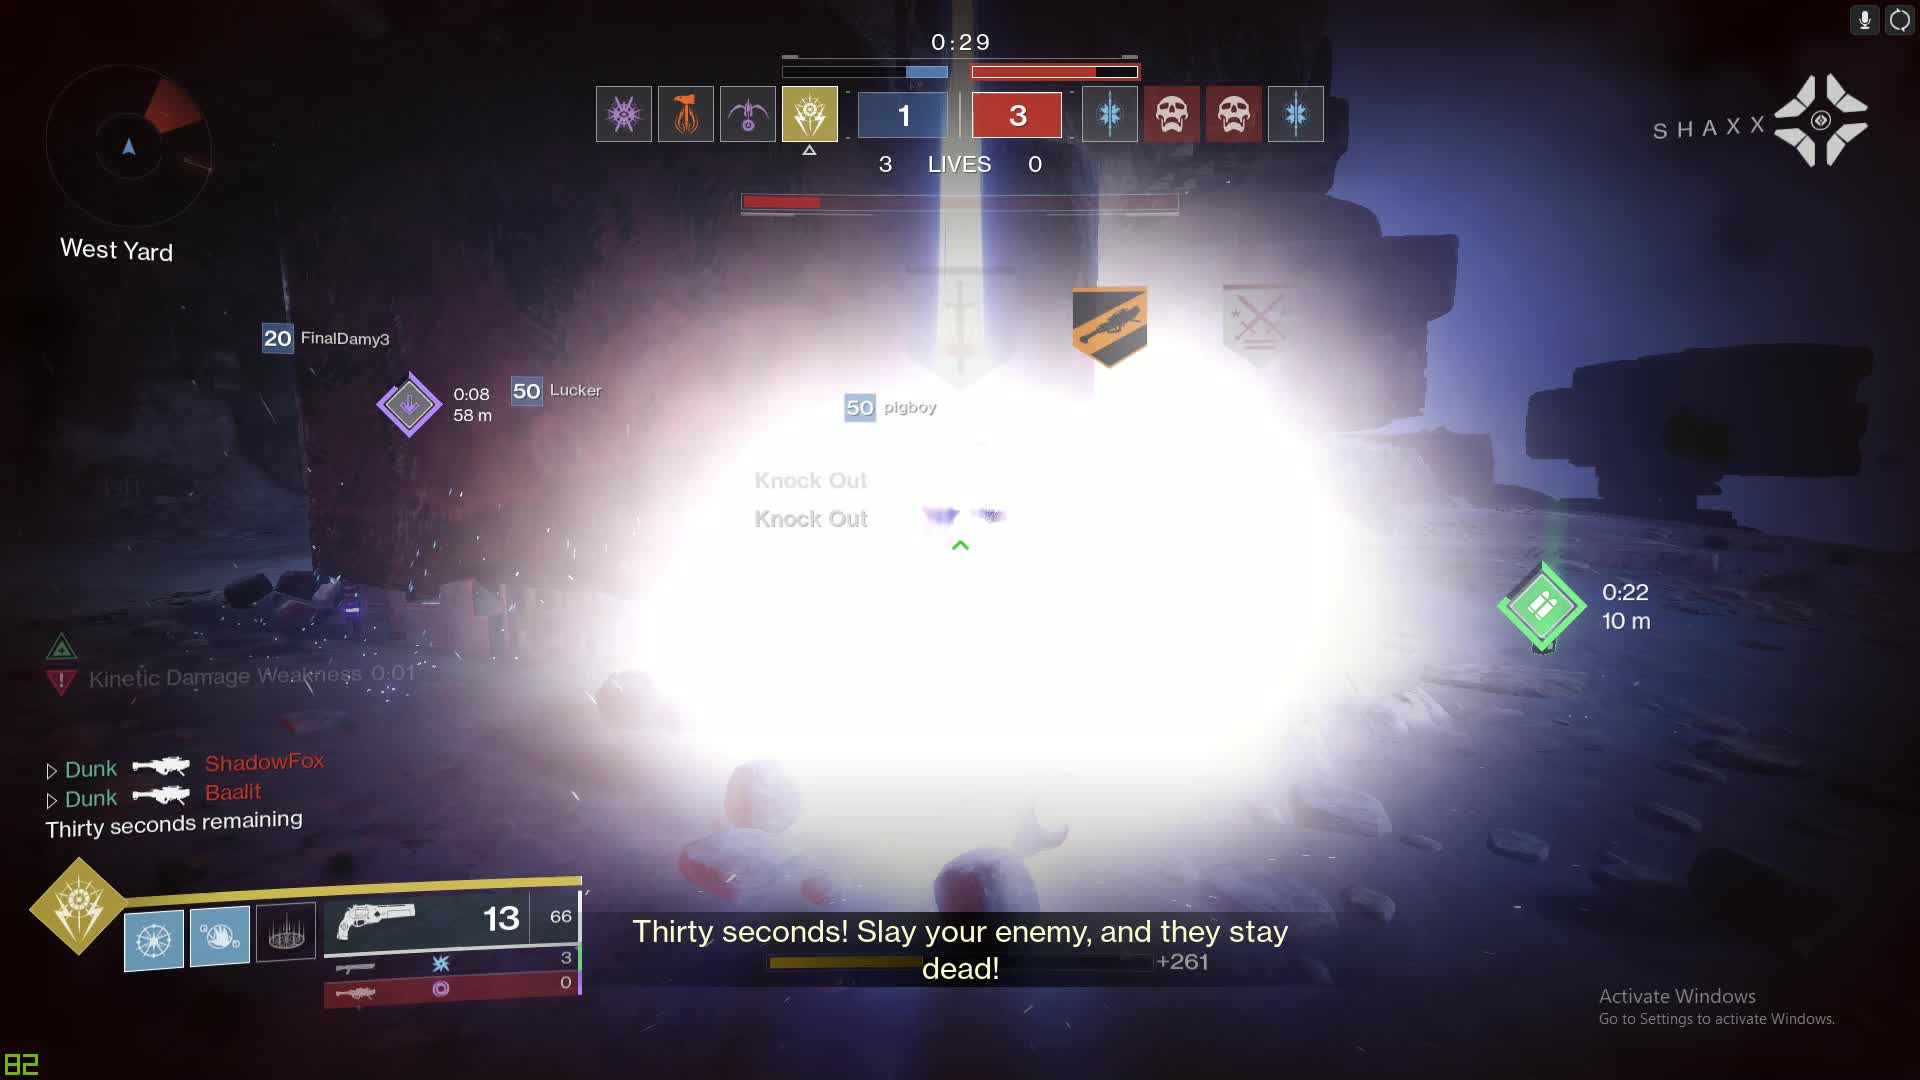 destiny 2, Uh, yep. GIFs